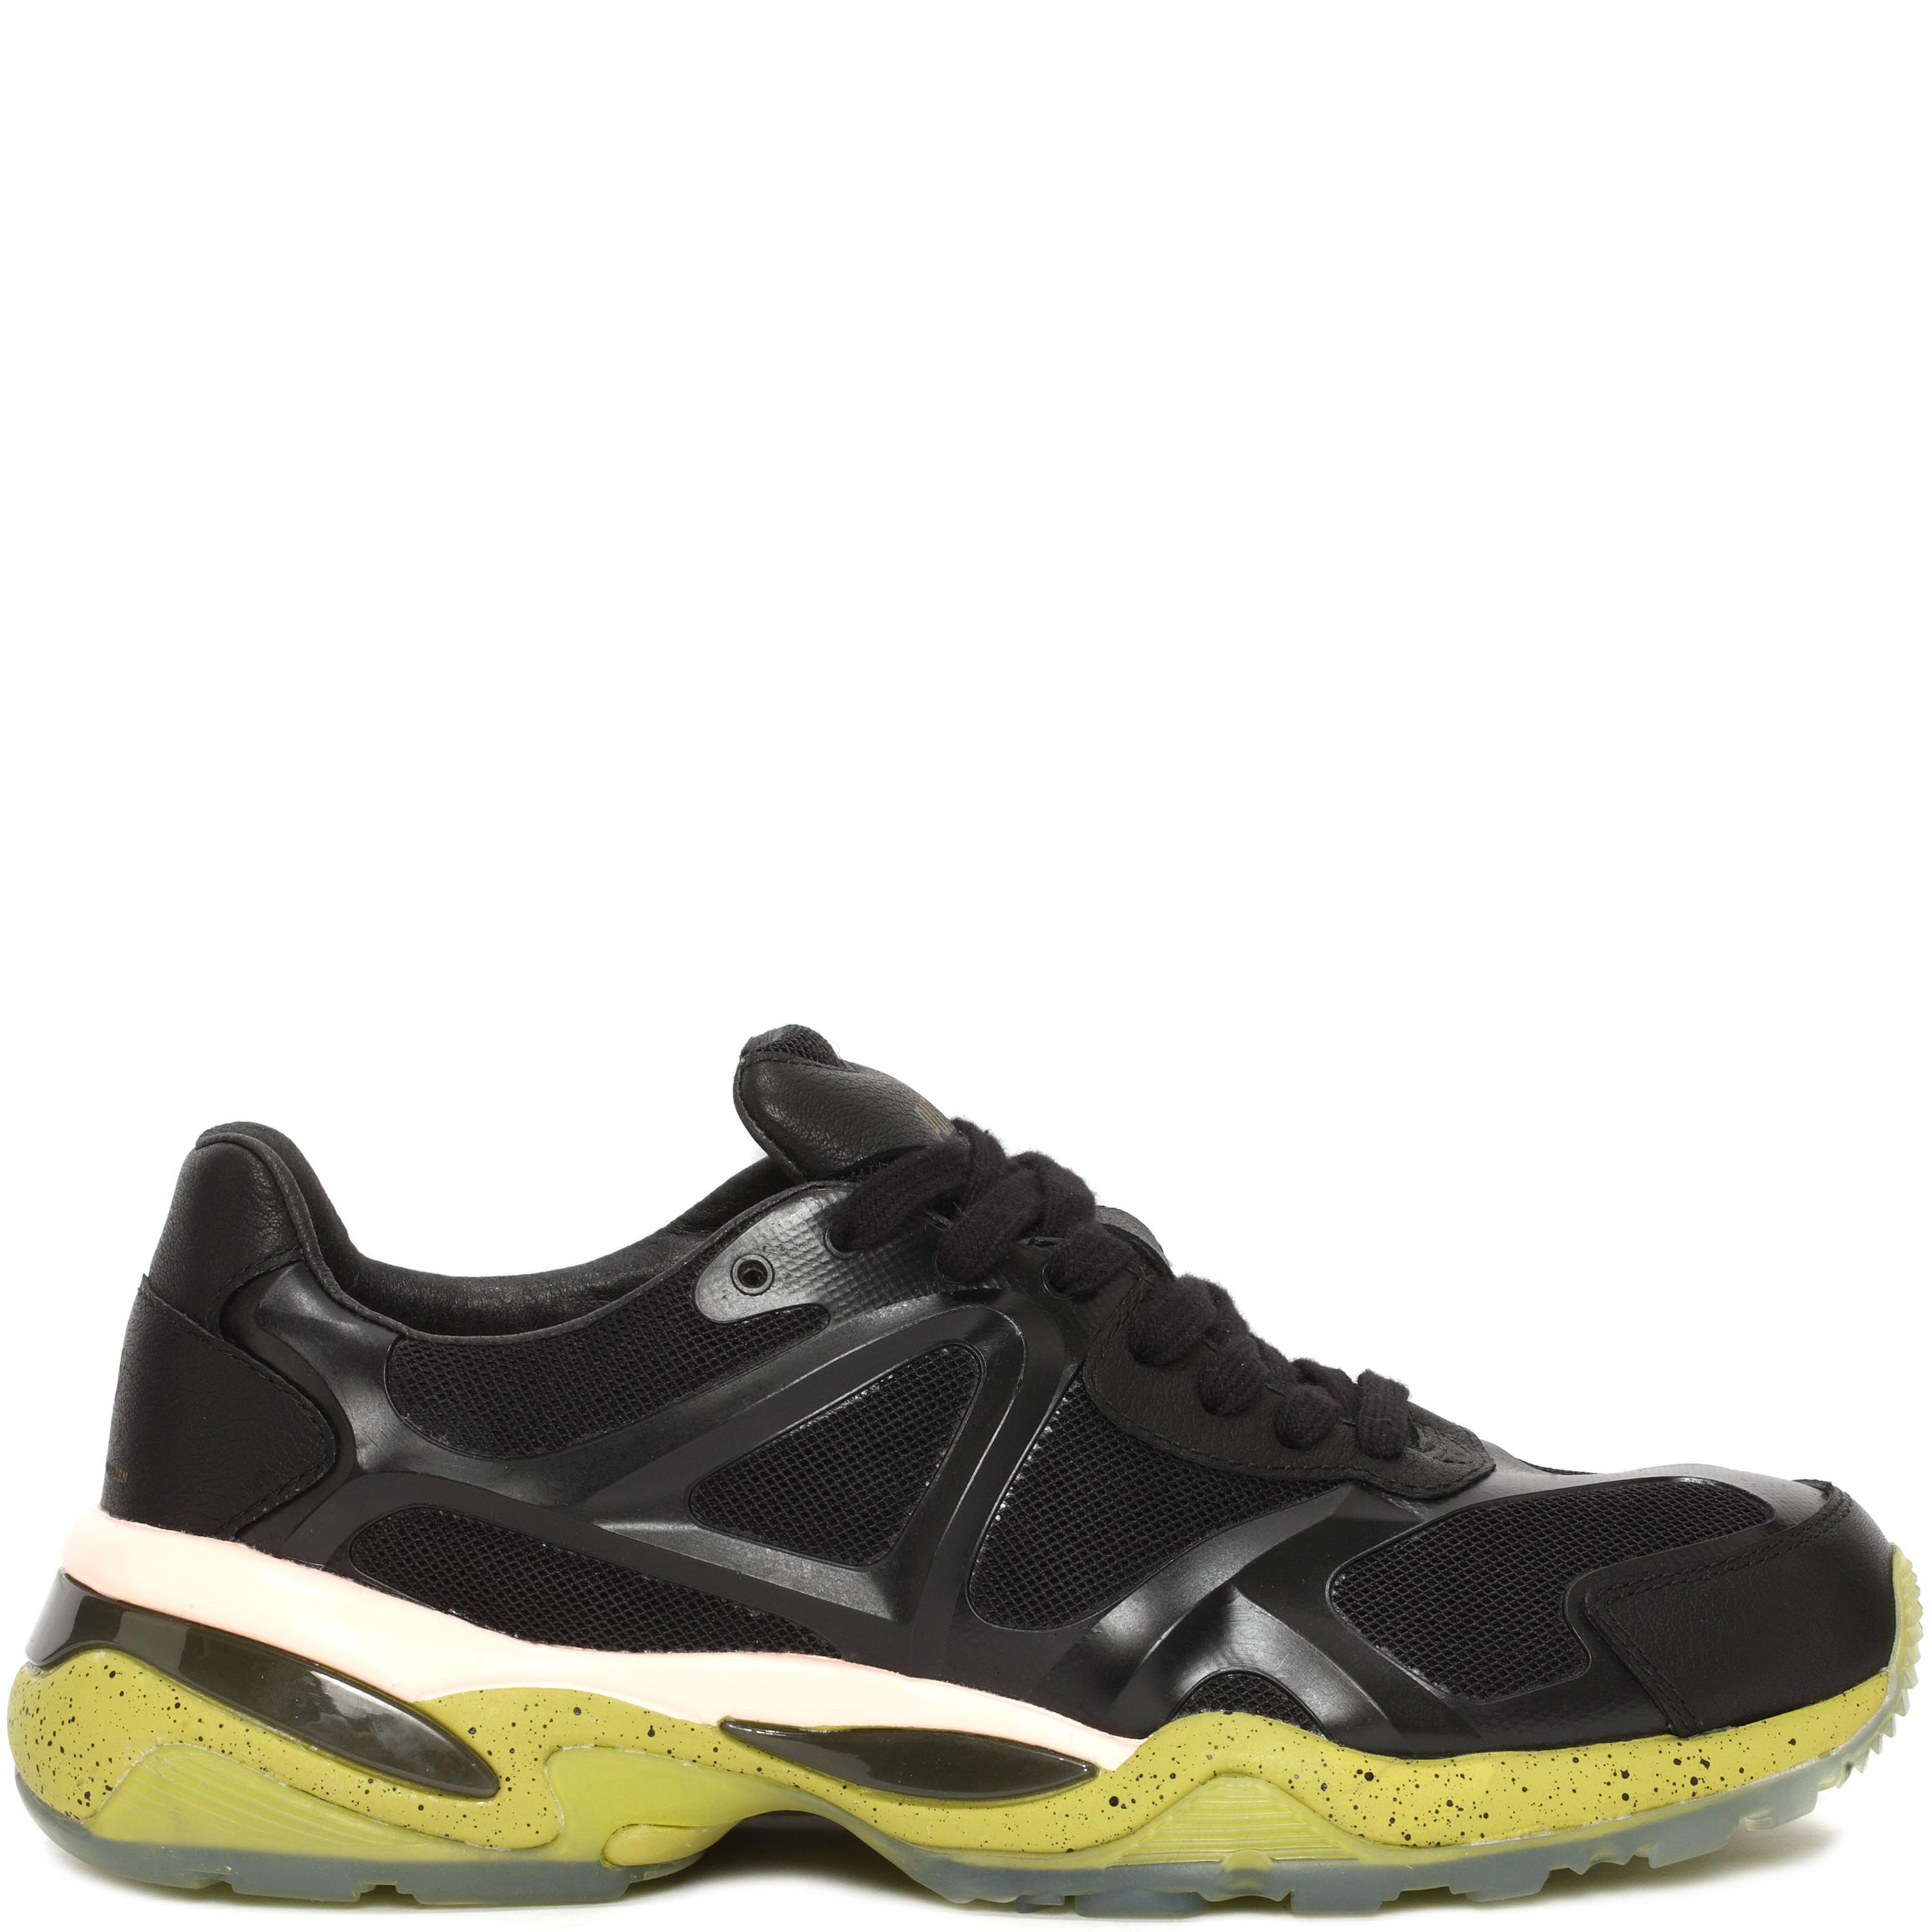 Women Sneakers - Women Shoes on ALEXANDER MCQUEEN PUMA Online Store